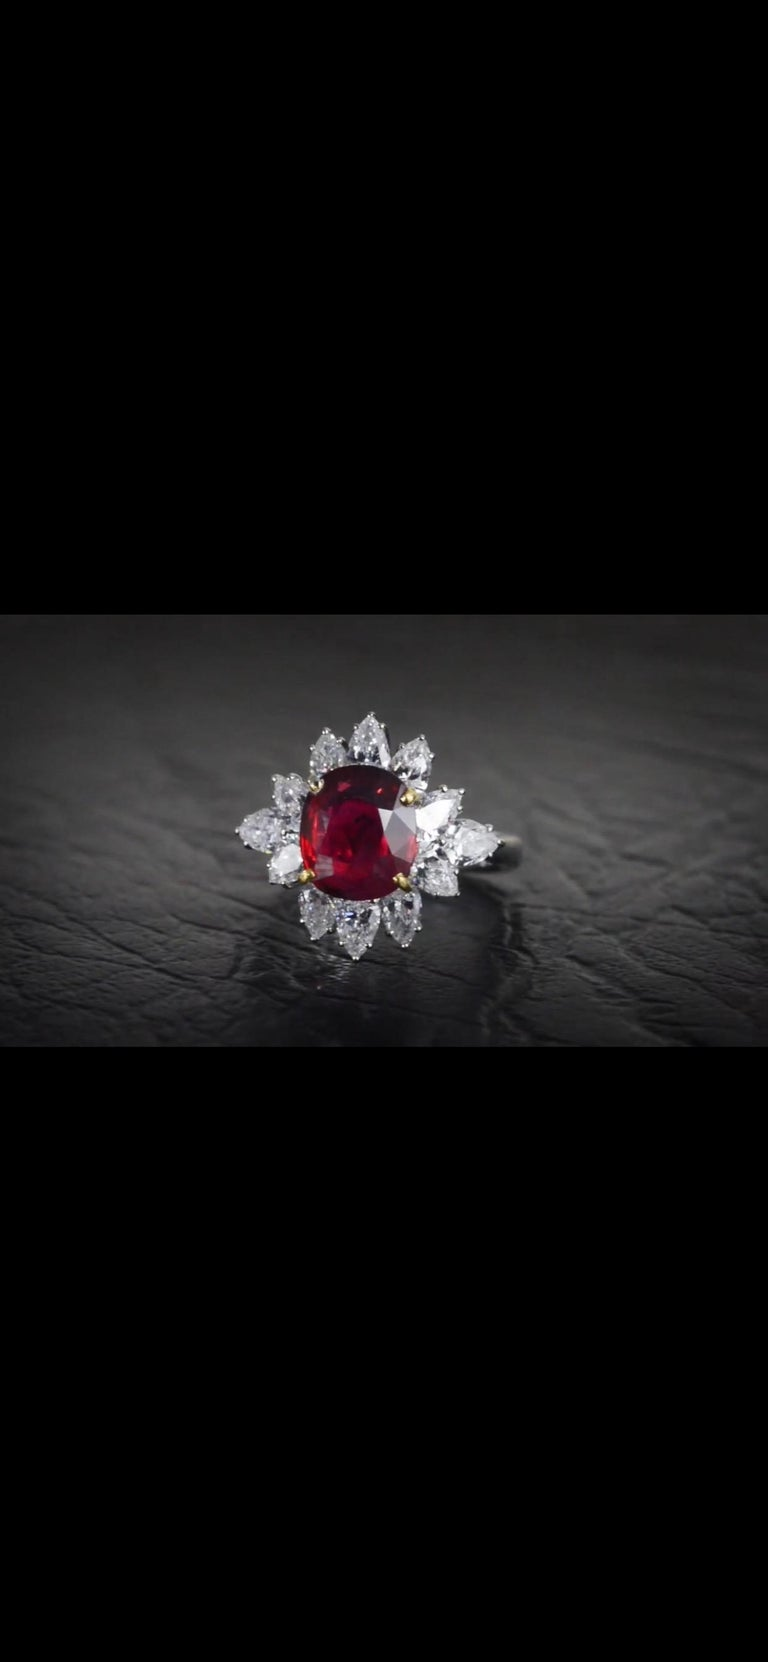 Triple Certified 4.09ct Natural Burmese Ruby & Diamond Cocktail Ring 18Kt Gold  For Sale 4